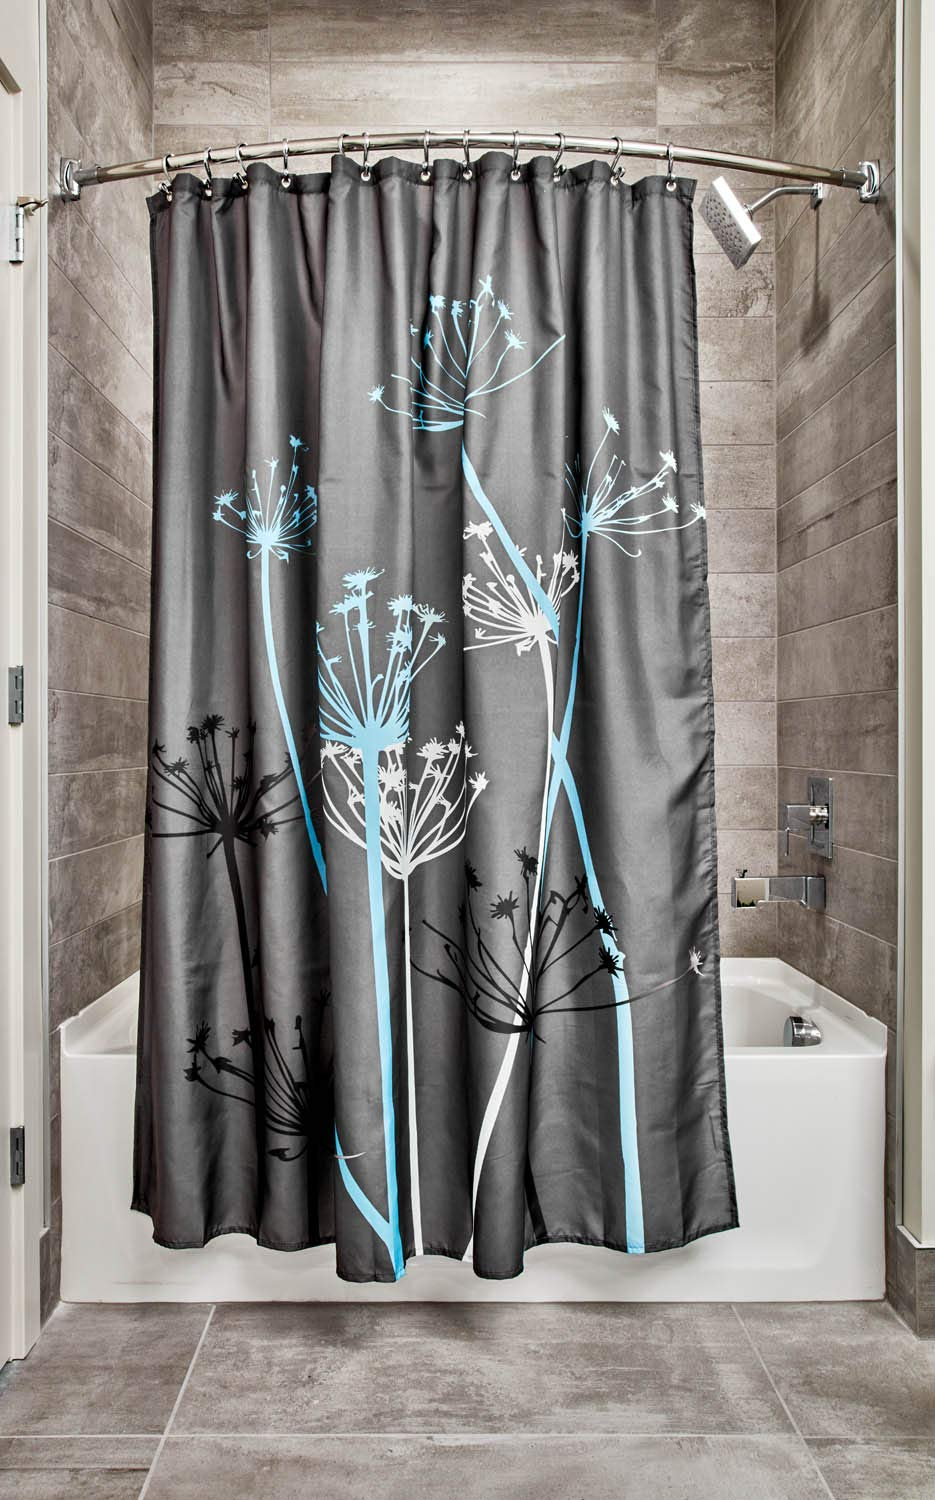 InterDesign Thistle Fabric Shower Curtain Modern Mildew Resistant Bath Liner For Master Bathroom Kids Guest 72 X Inches